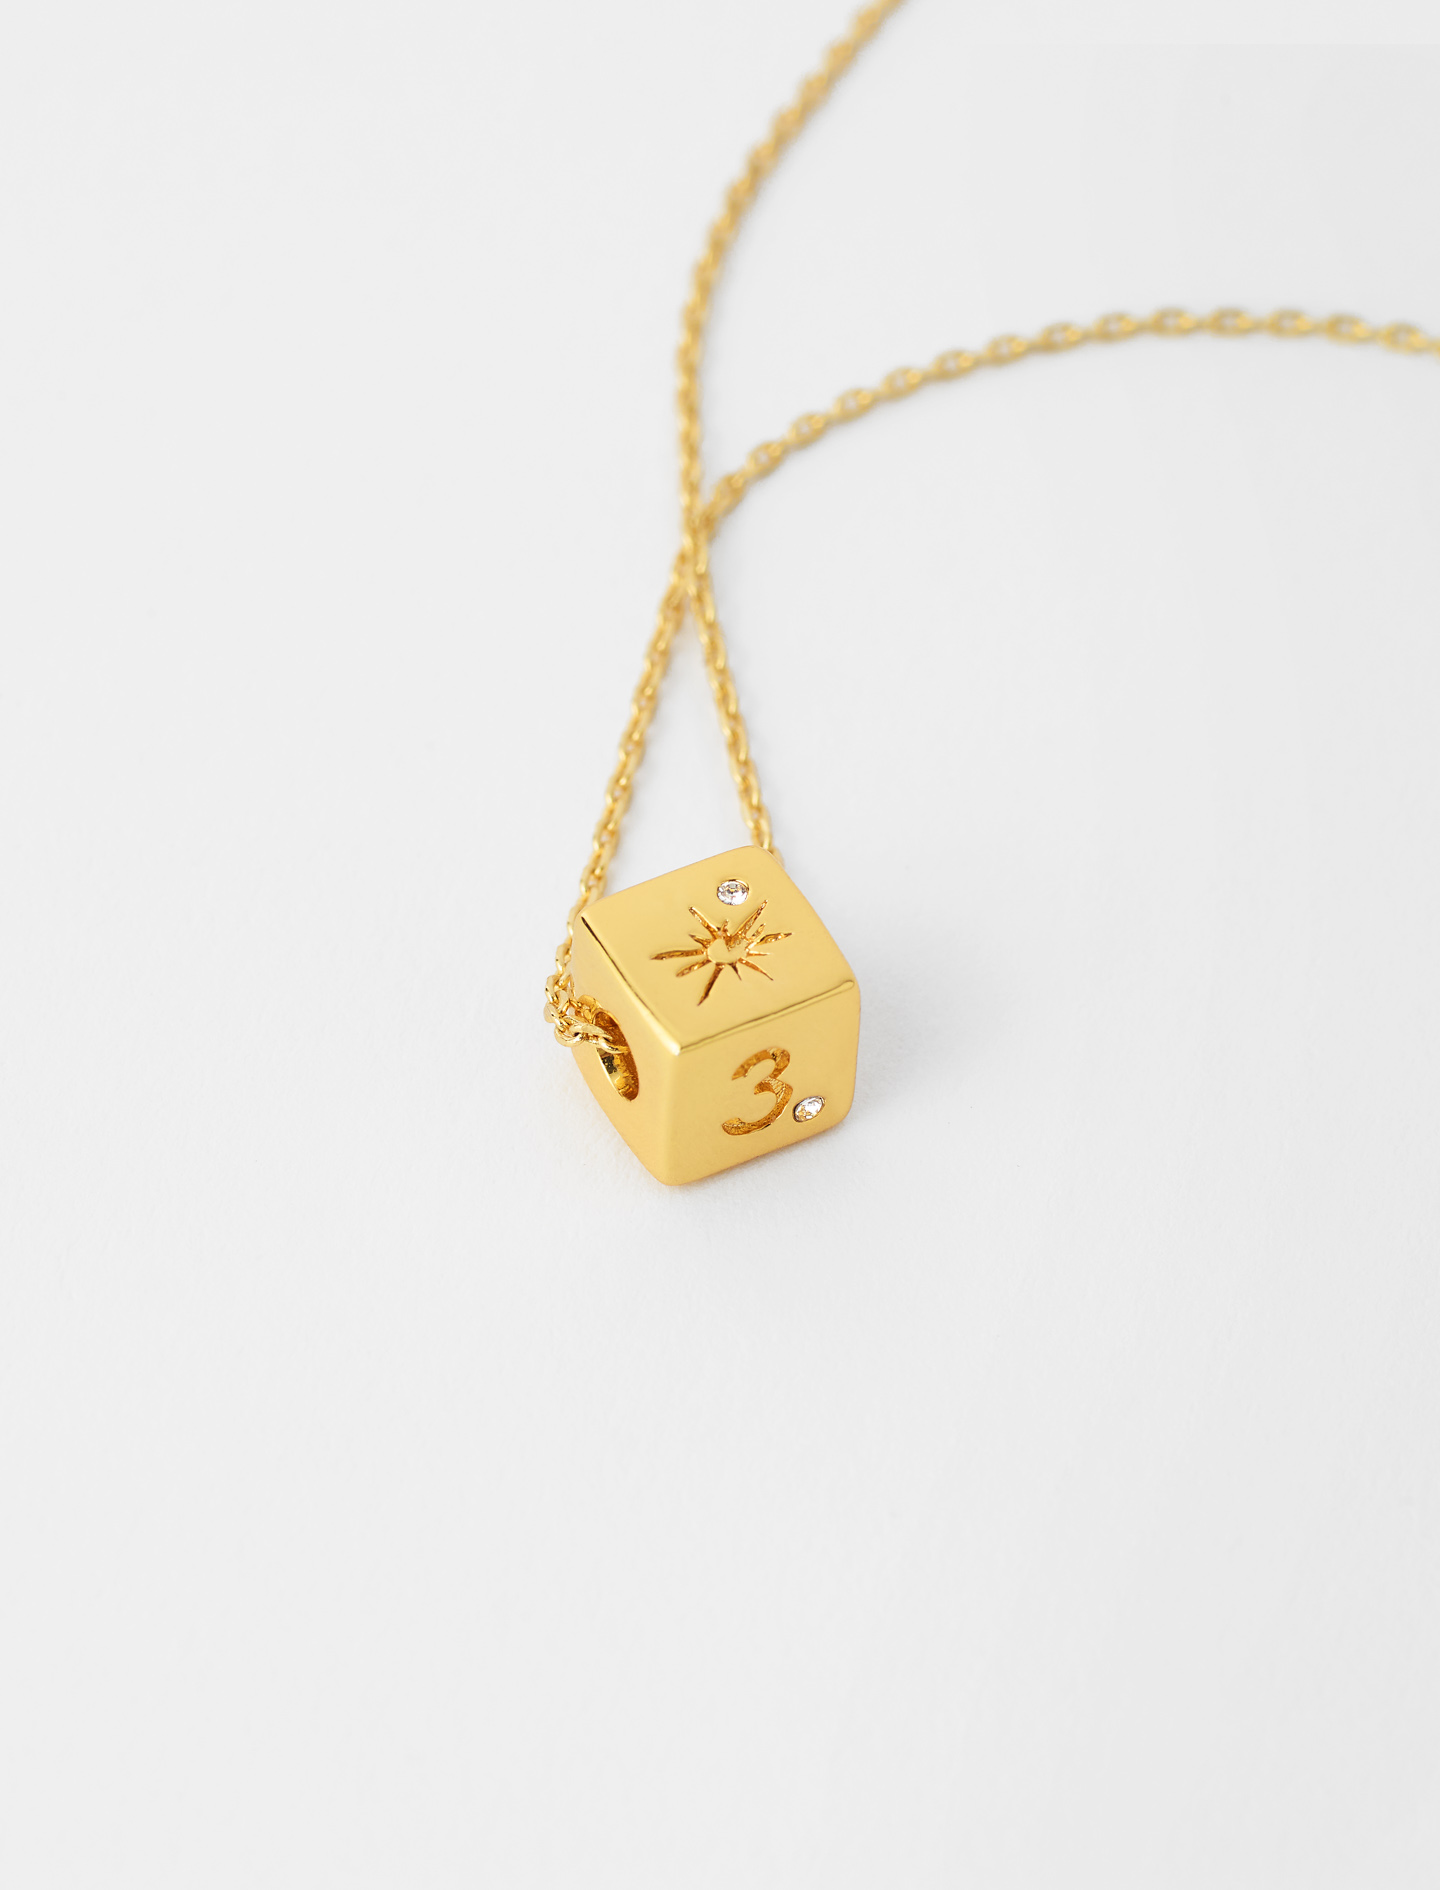 number 3 dice necklace gold by maje paris